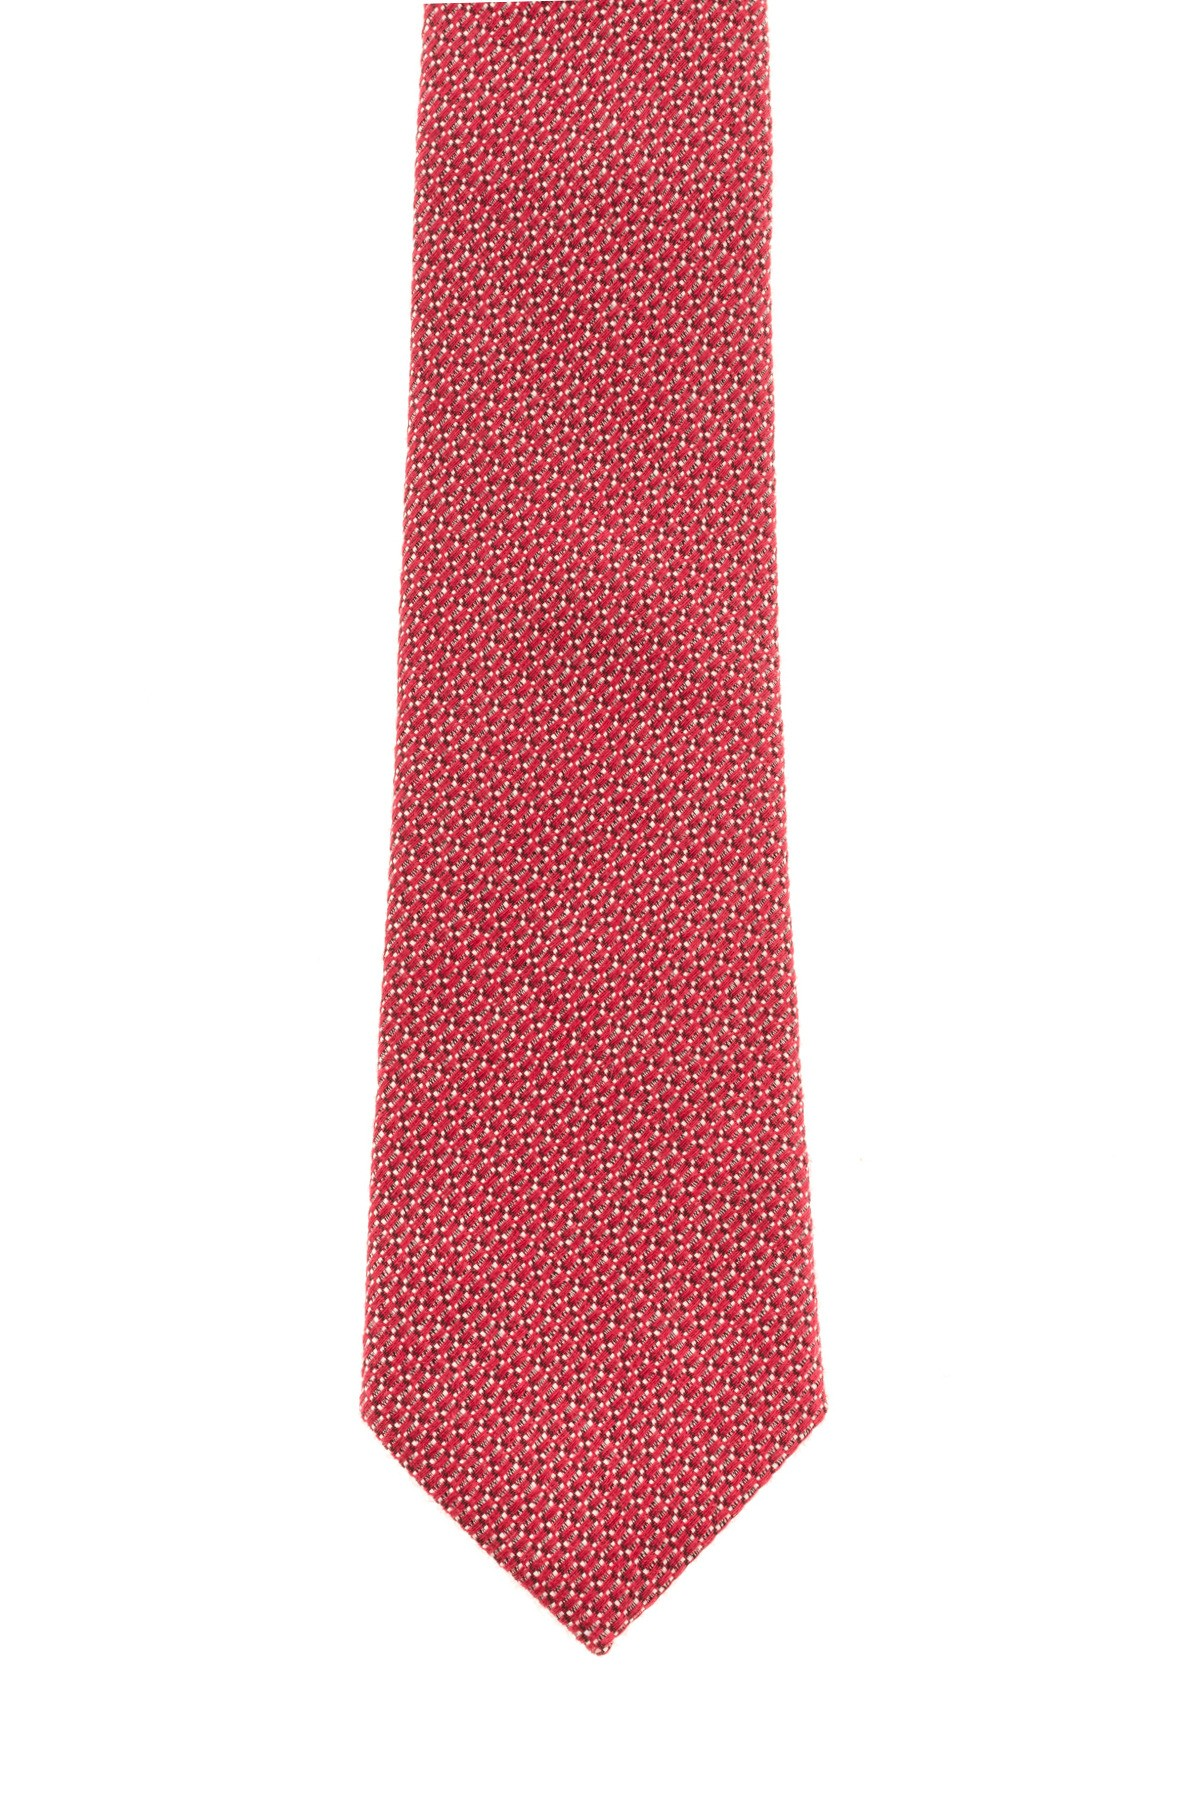 RIONE FONTANA Red tie for men F/W 16-17 made in Italy